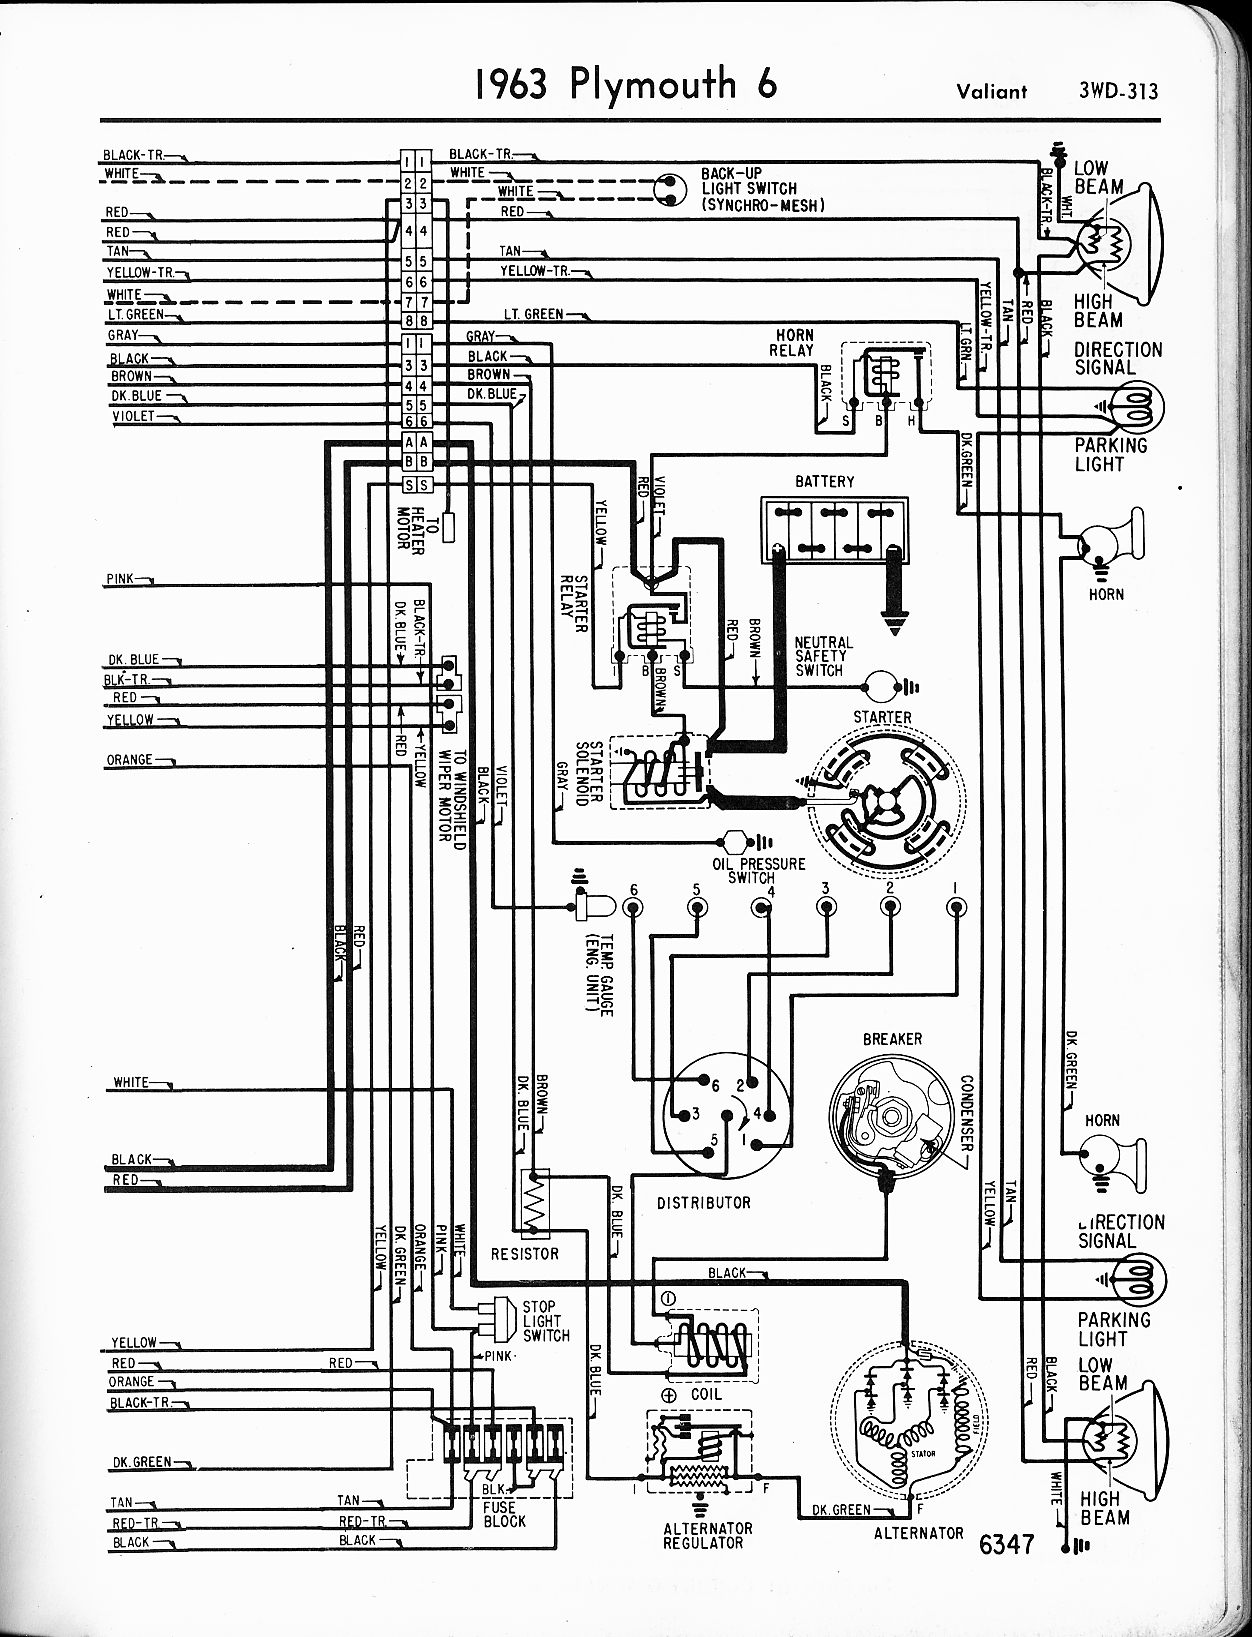 MWire5765 313 1964 plymouth wiring diagram 1964 wiring diagrams instruction  at edmiracle.co